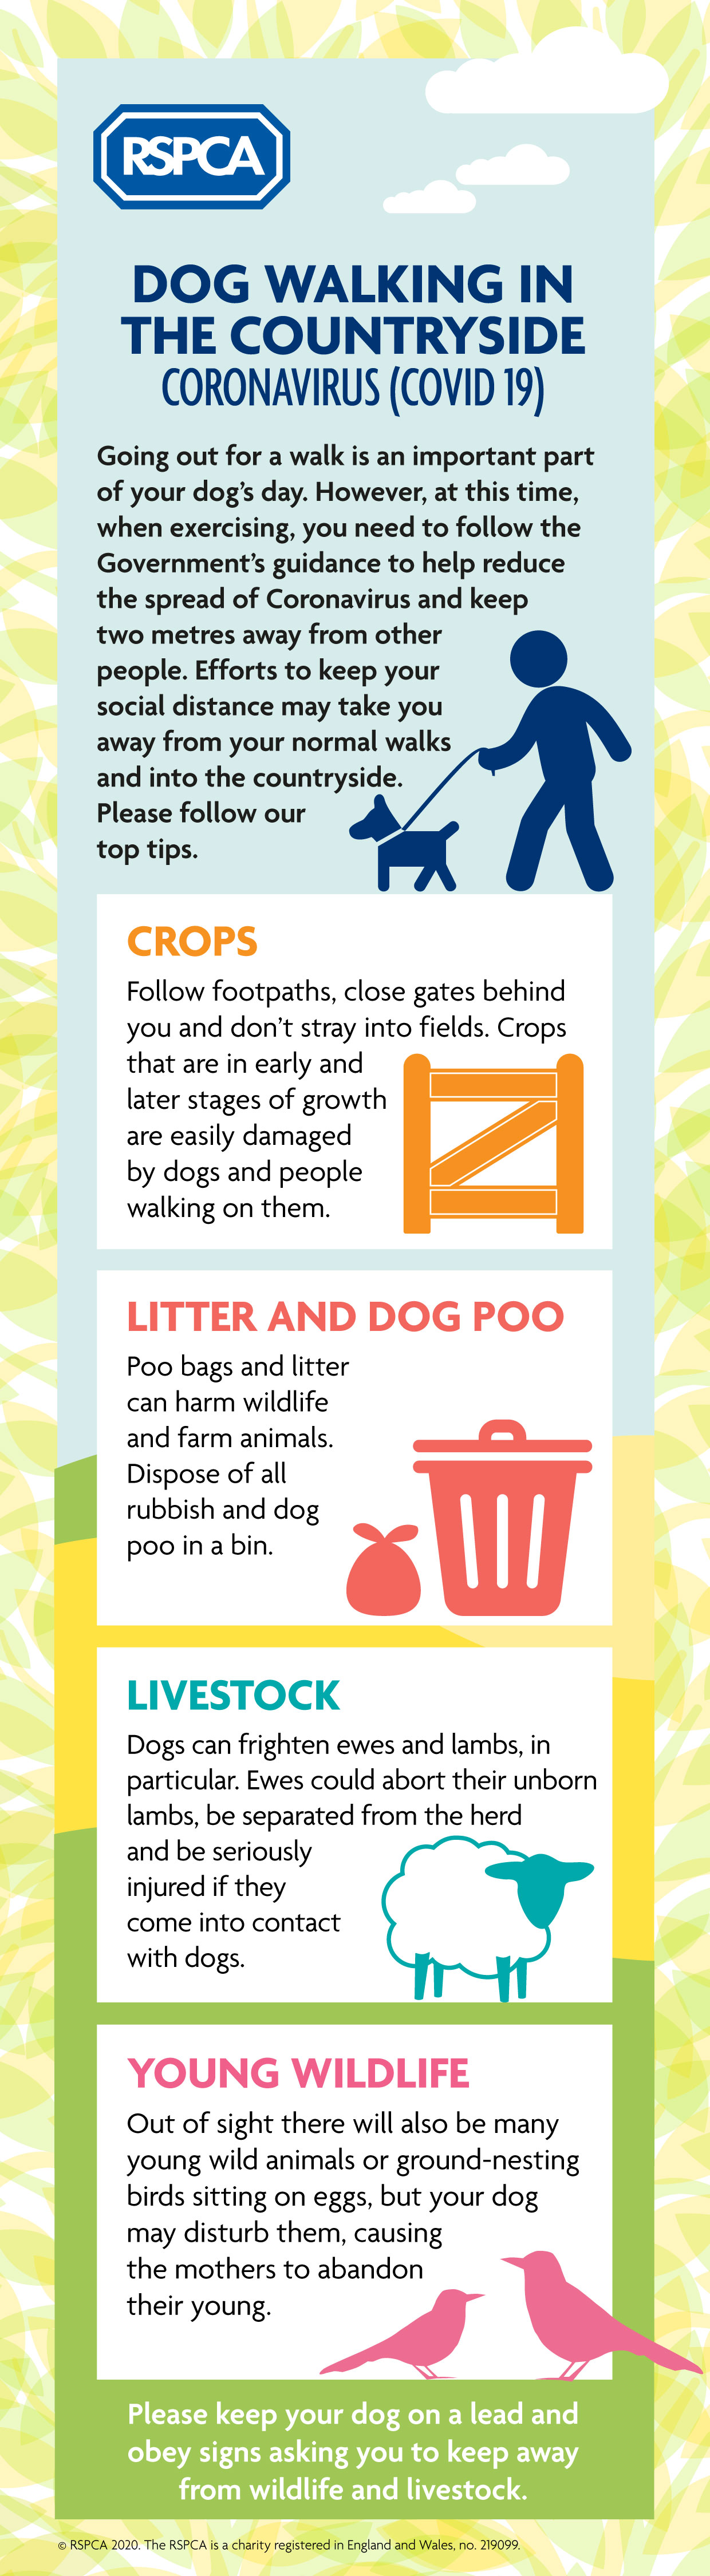 Walking your dog in the countryside infographic © RSPCA